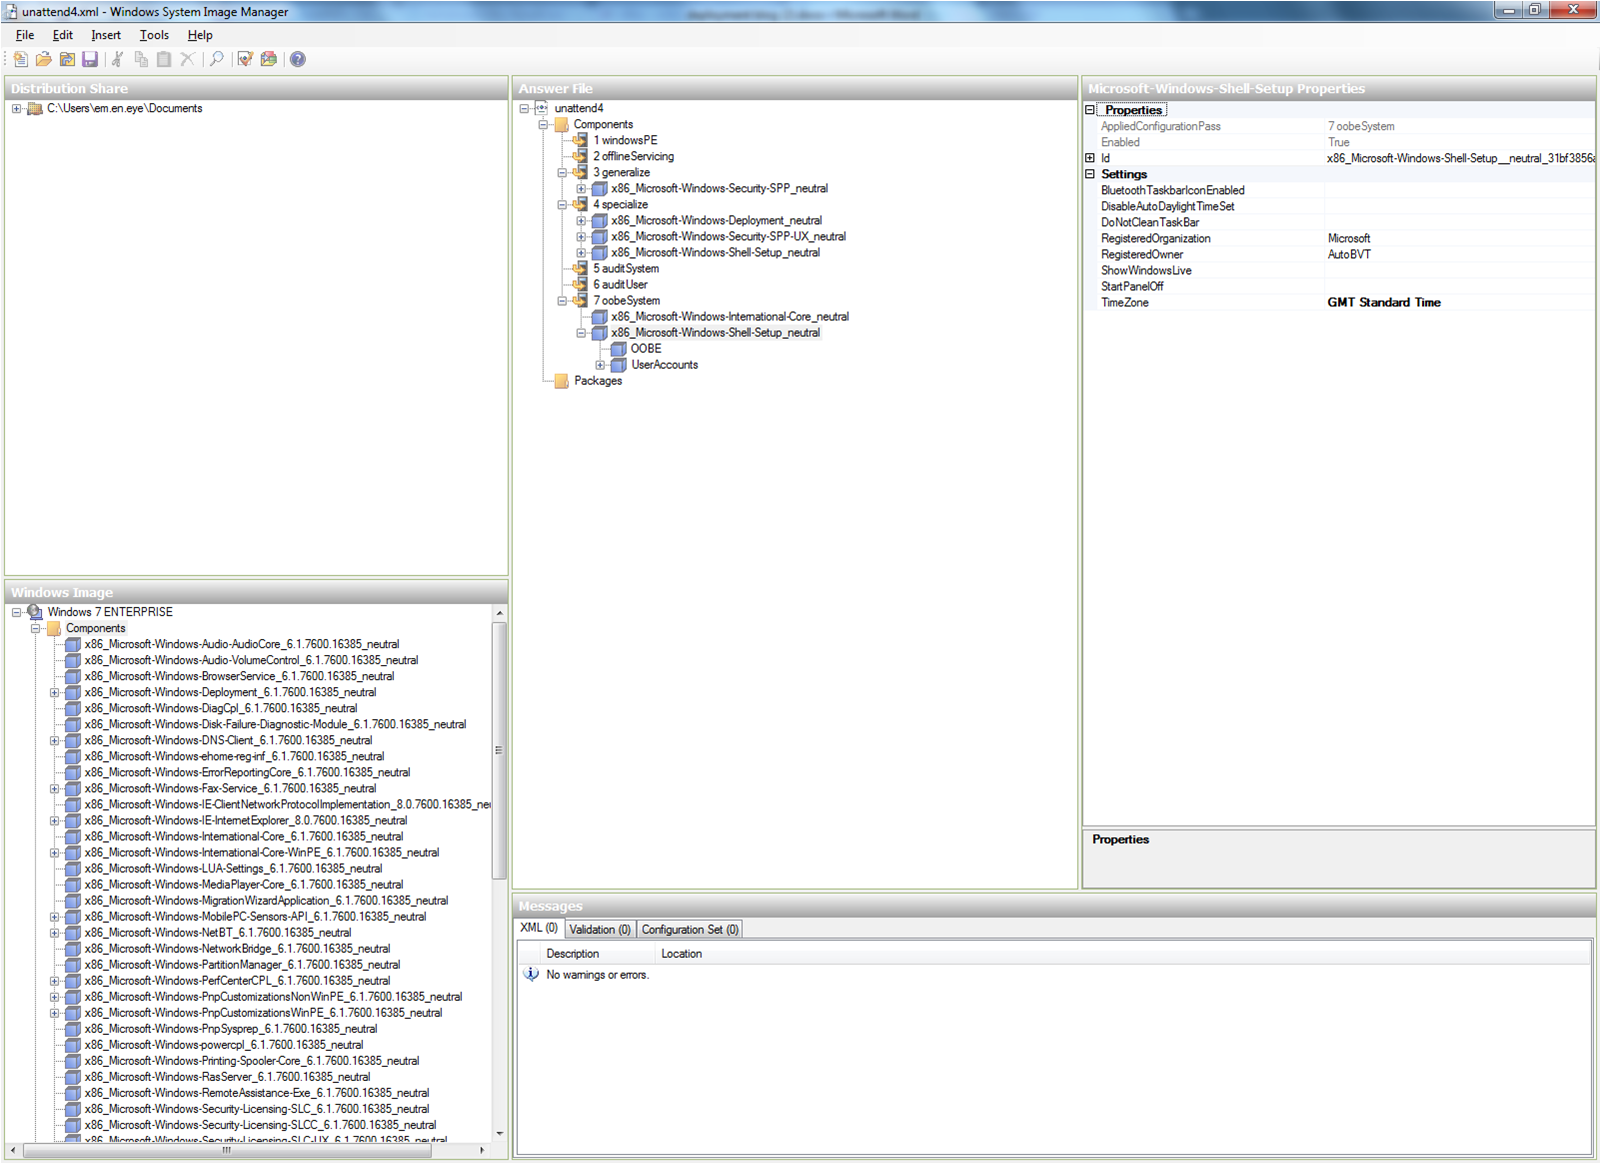 Building an Unattended Answer File for Windows 7 | Me, Myself and IT